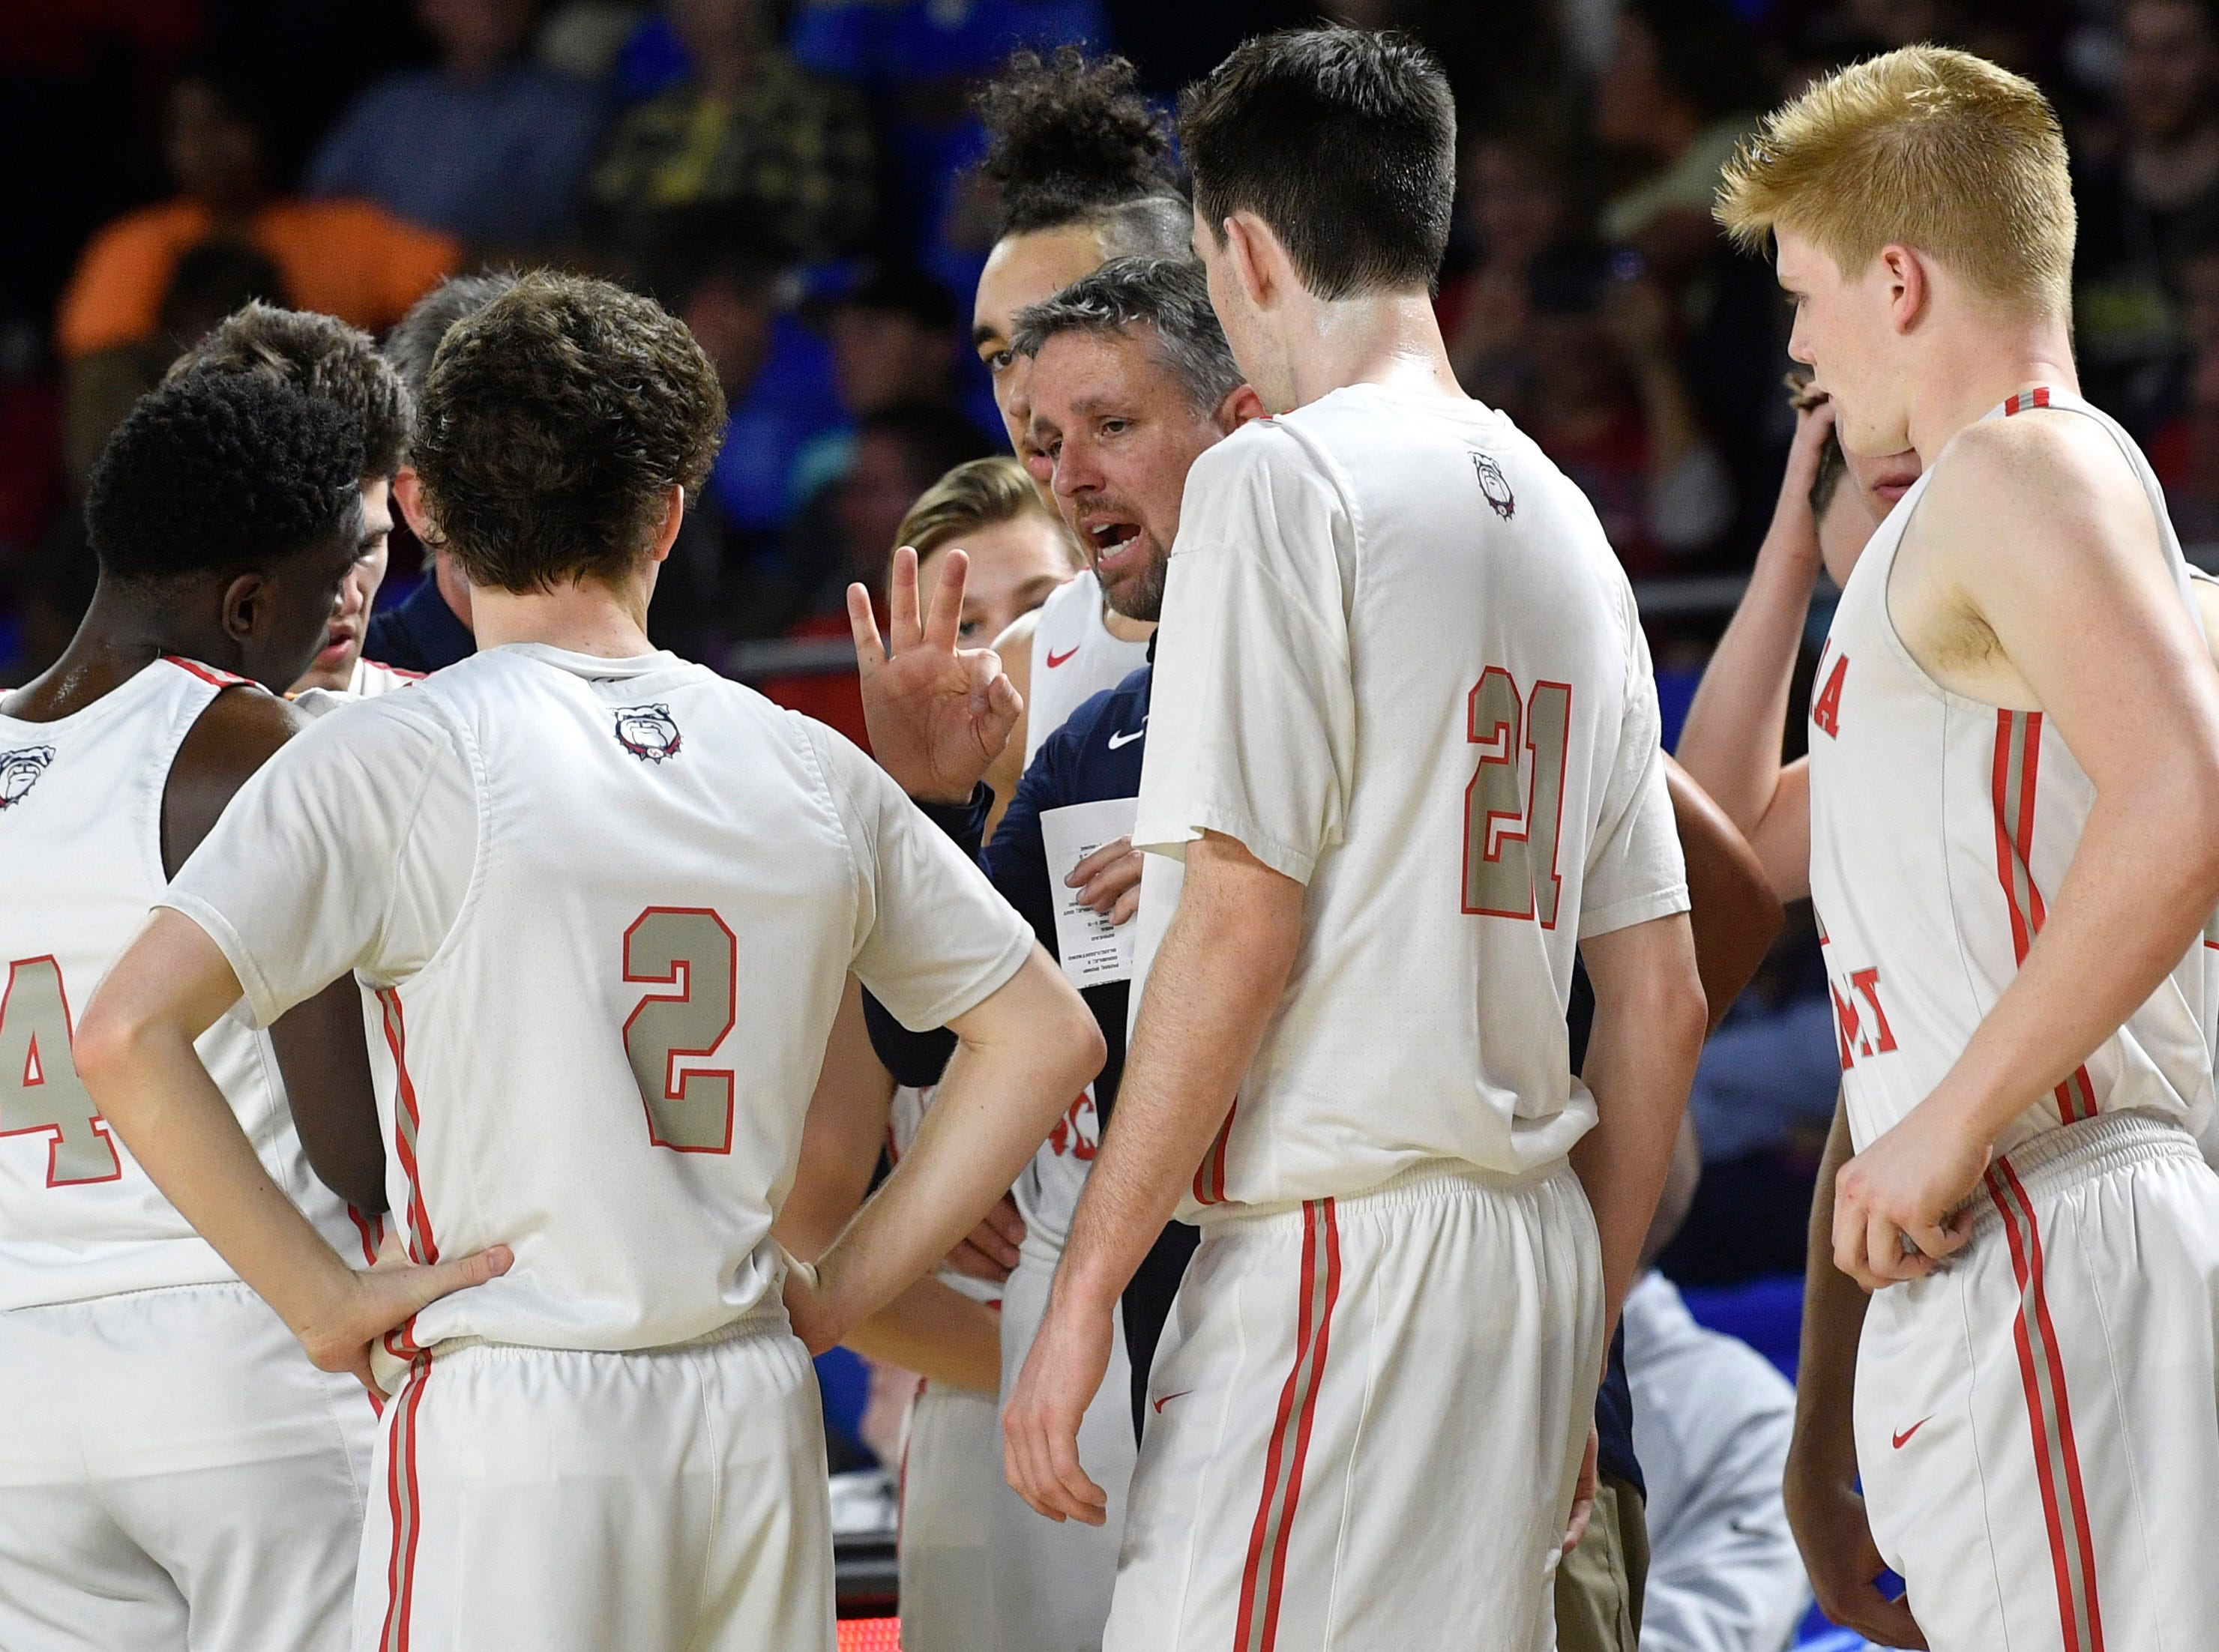 Coach Marty DeJarnette talks with his players as Manassas plays Columbia Academy in the TSSAA Class A quarterfinals  Thursday, March 14, 2019, in Murfreesboro, Tenn.